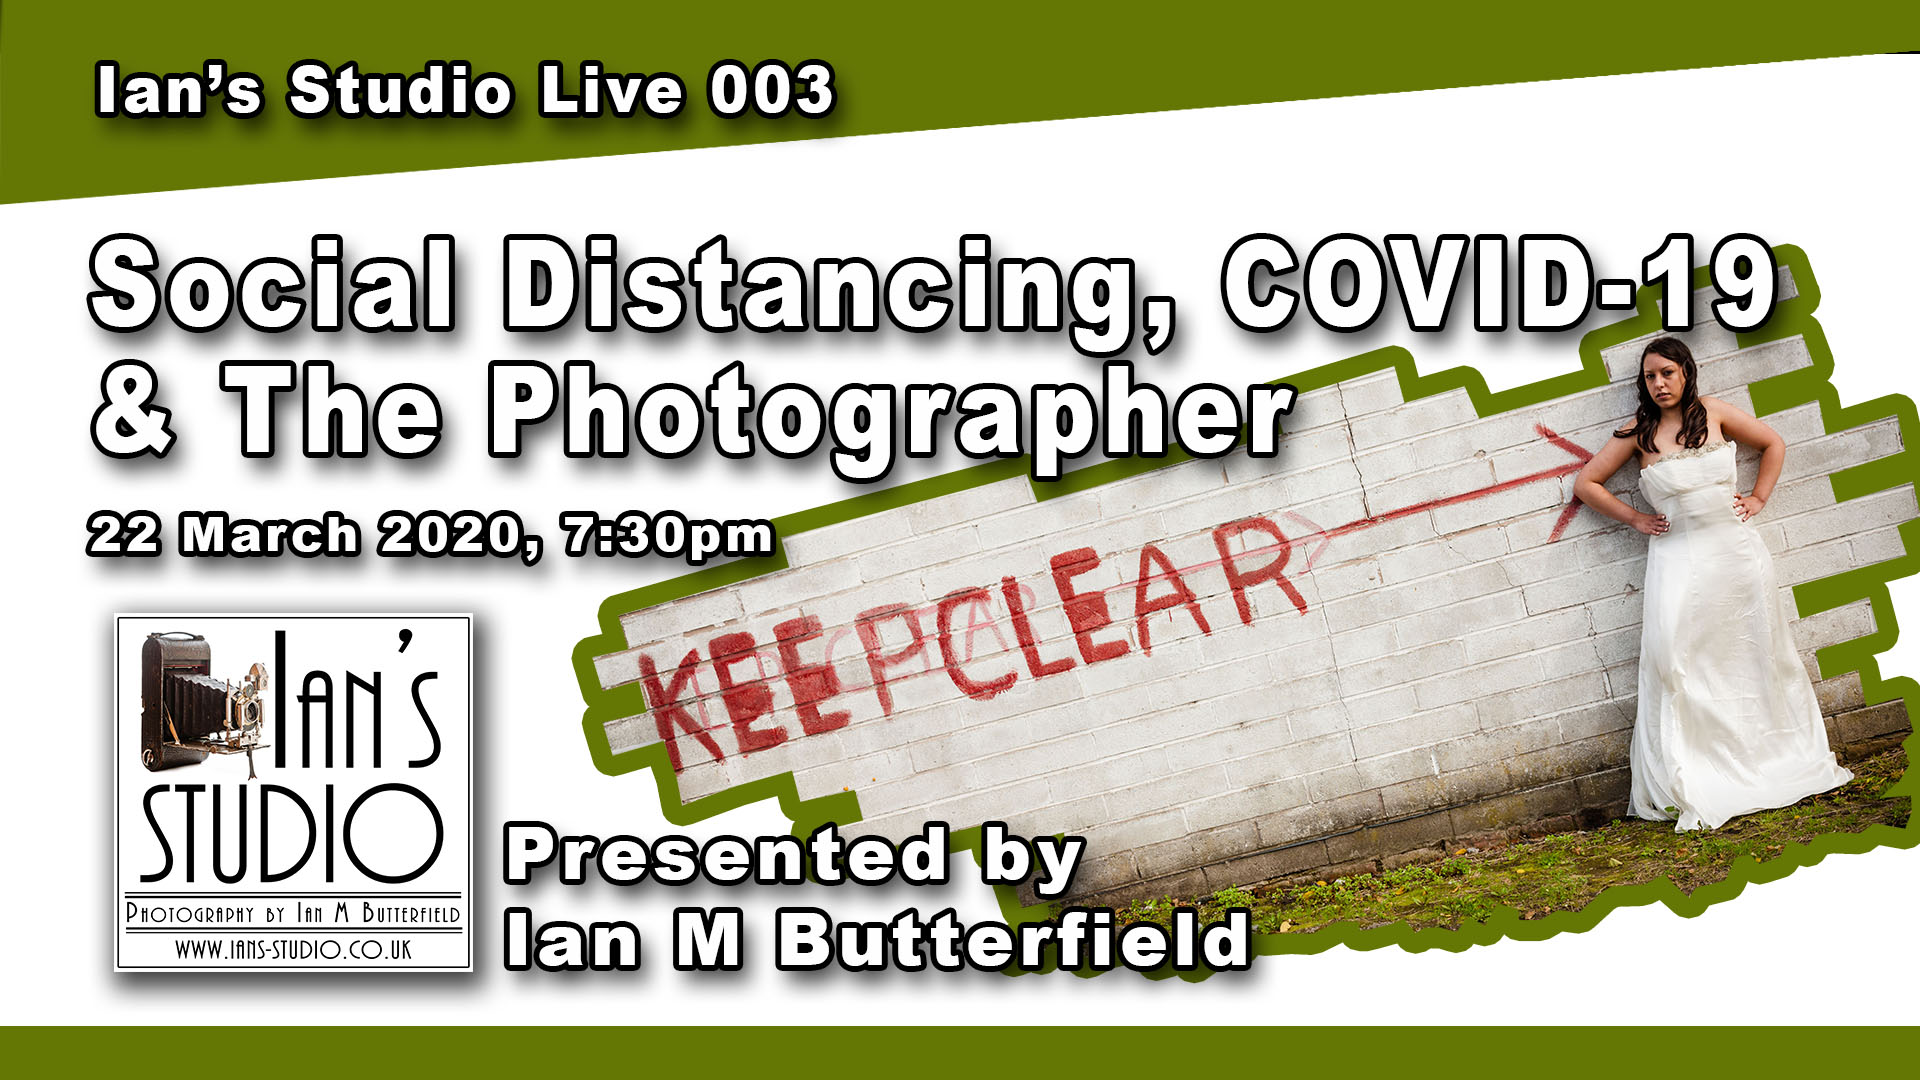 22 MAR 2020 LIVESTREAM FULL REPLAY: Ian's Studio Live #003 – Social Distancing, COVID-19 & The Photographer